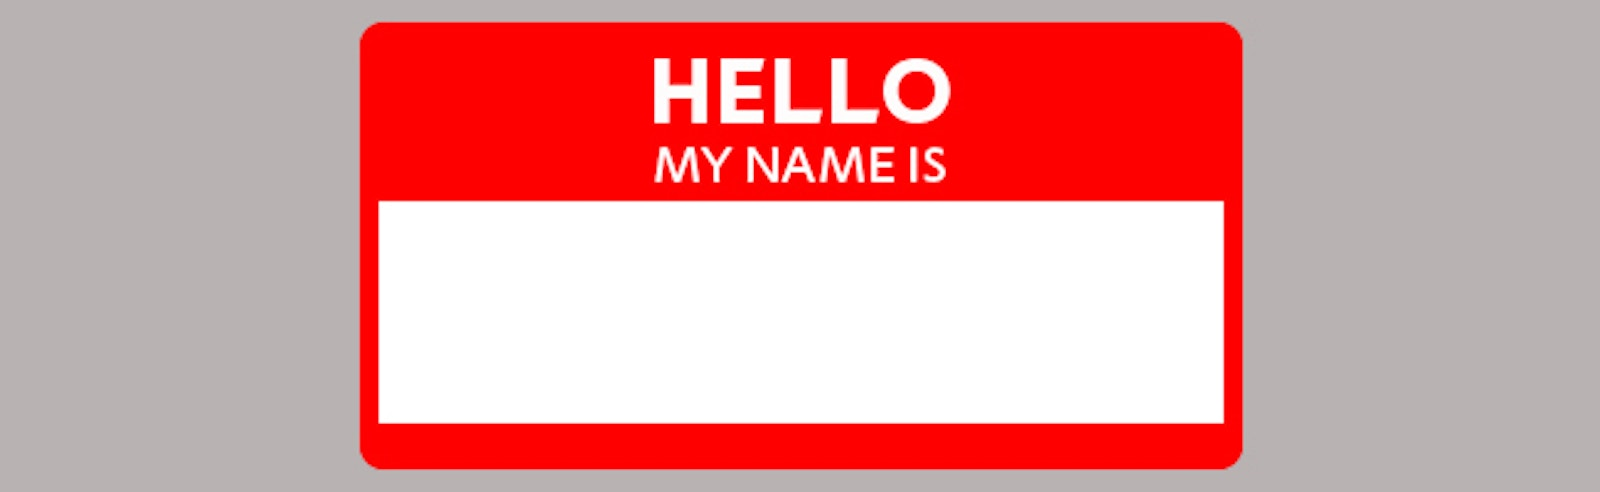 Hello My Name Is Final